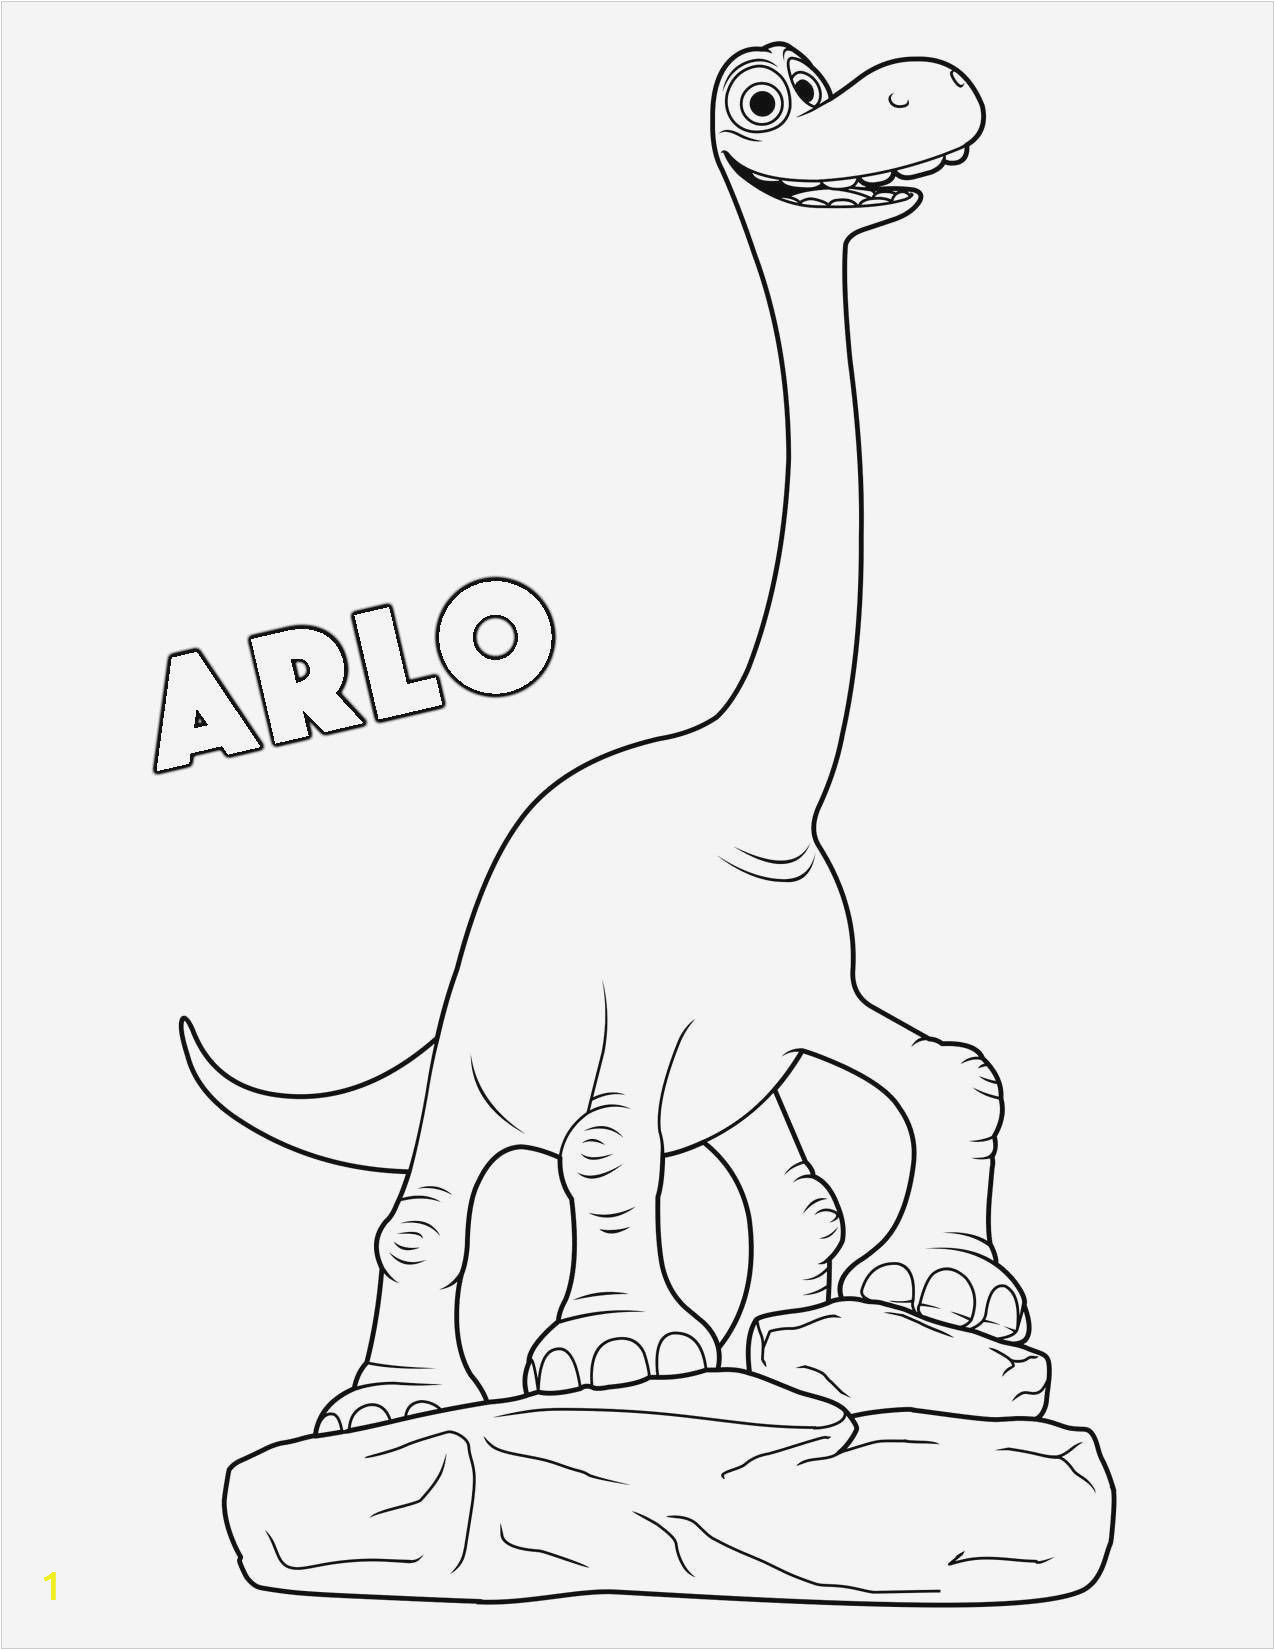 Preschool Dinosaur Coloring Pages ¢–· Childrens Printable Coloring Pages Luxury New Od Dog